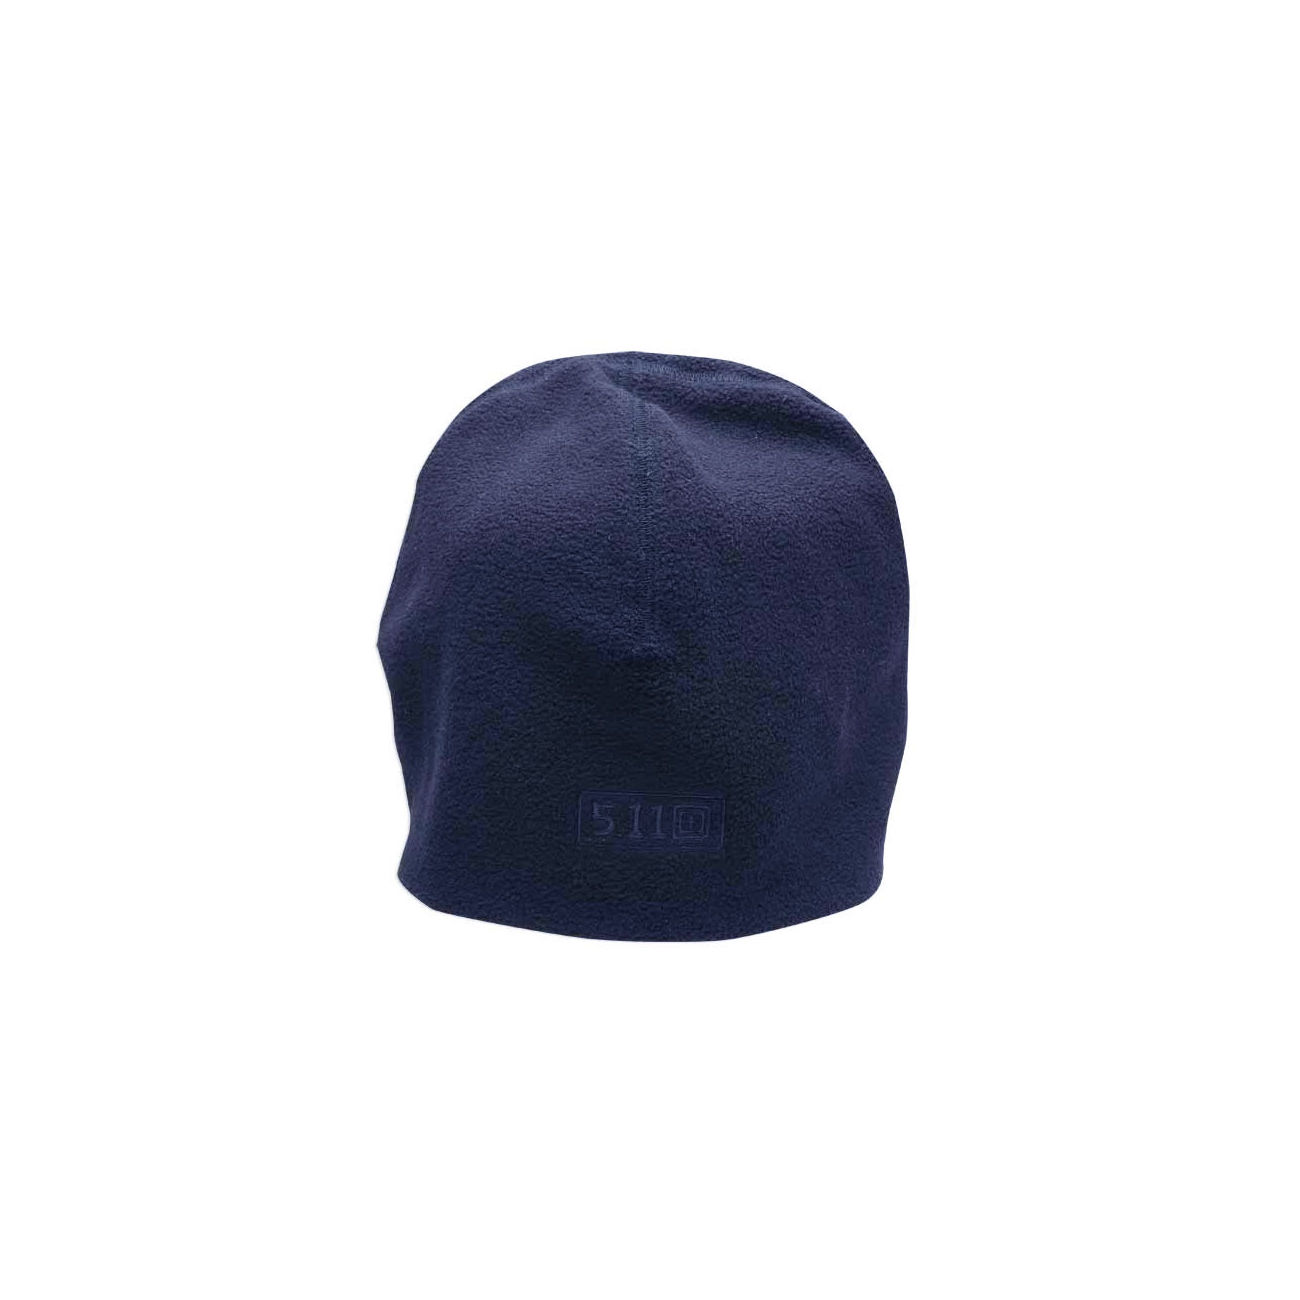 5.11 Watch Cap dark navy 0